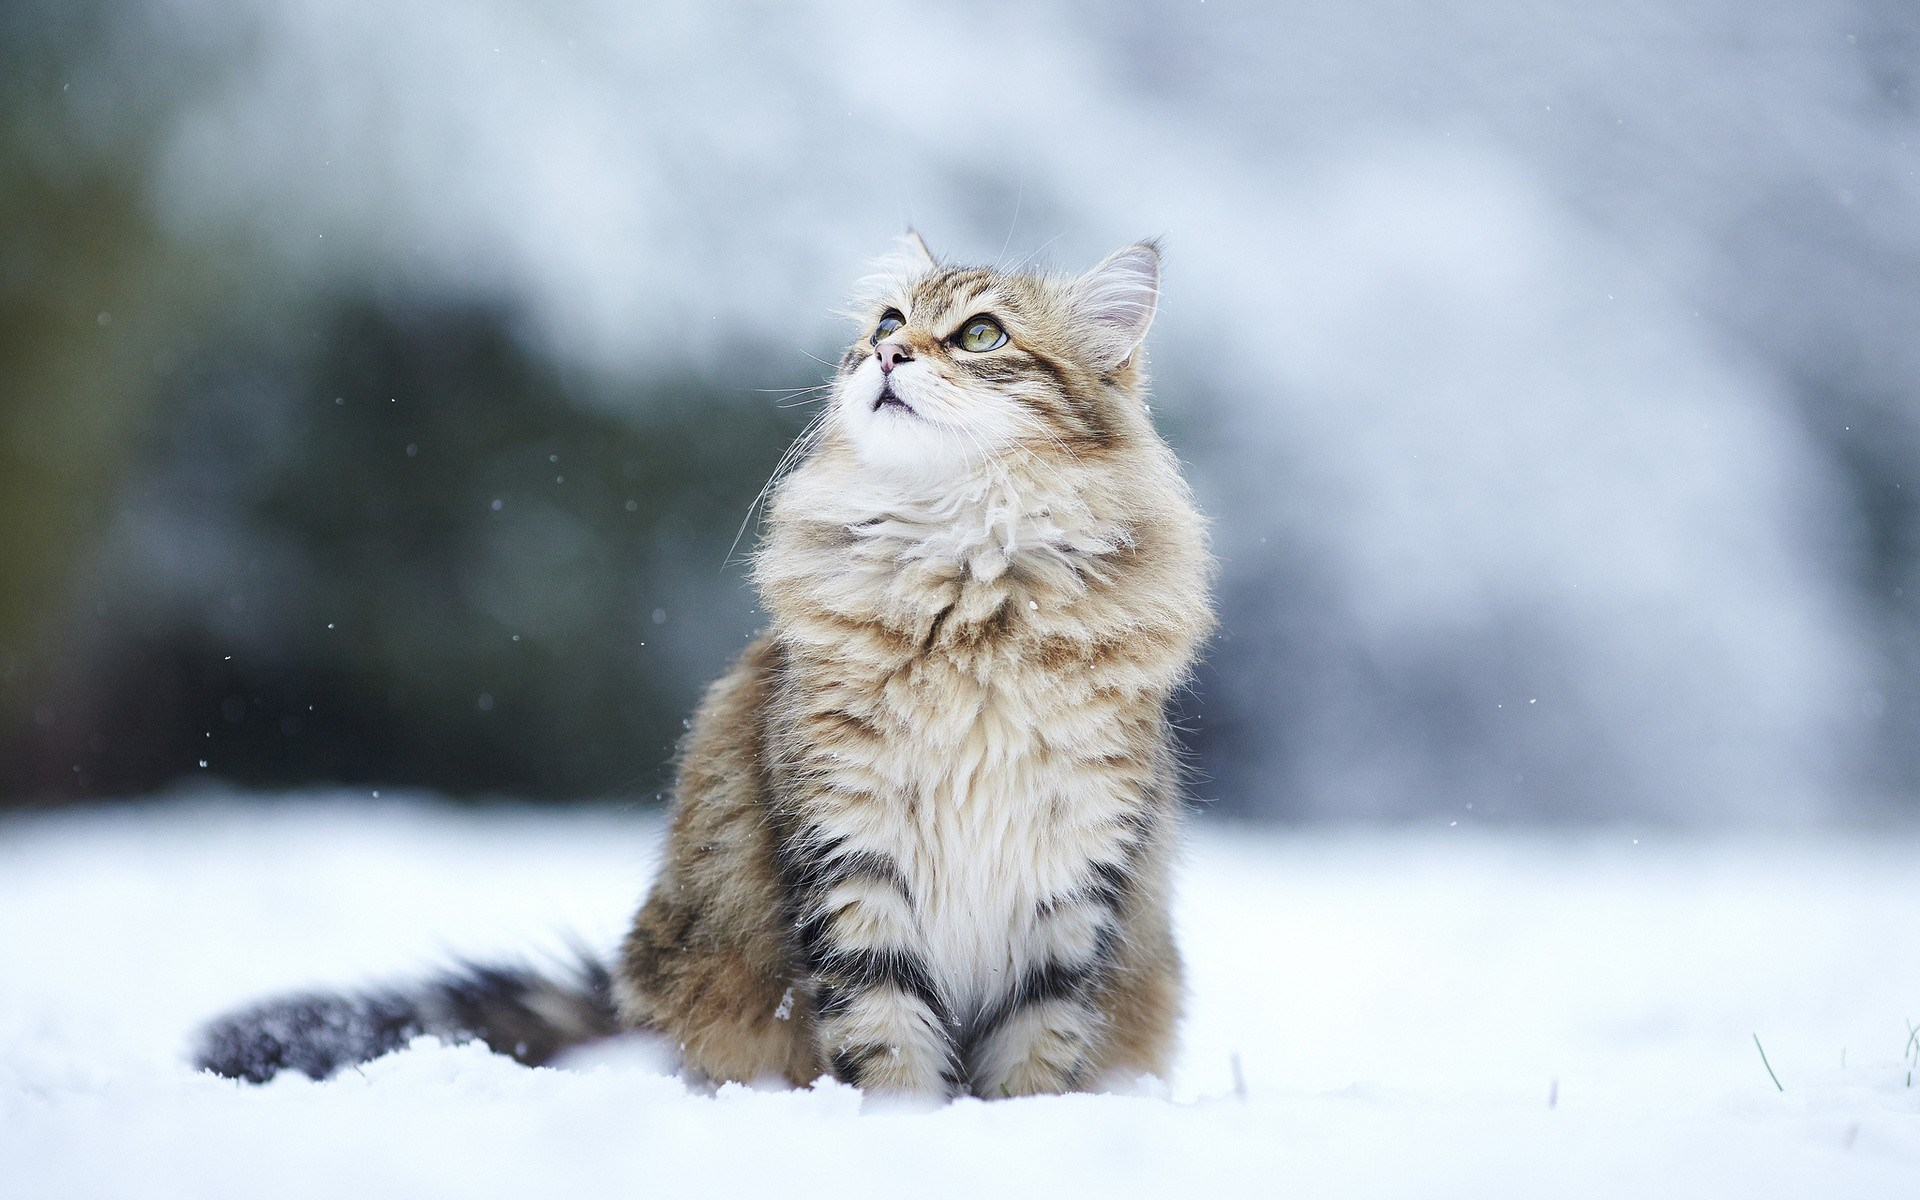 cat-hd-1080p-windows-wallpaper-wp3803665